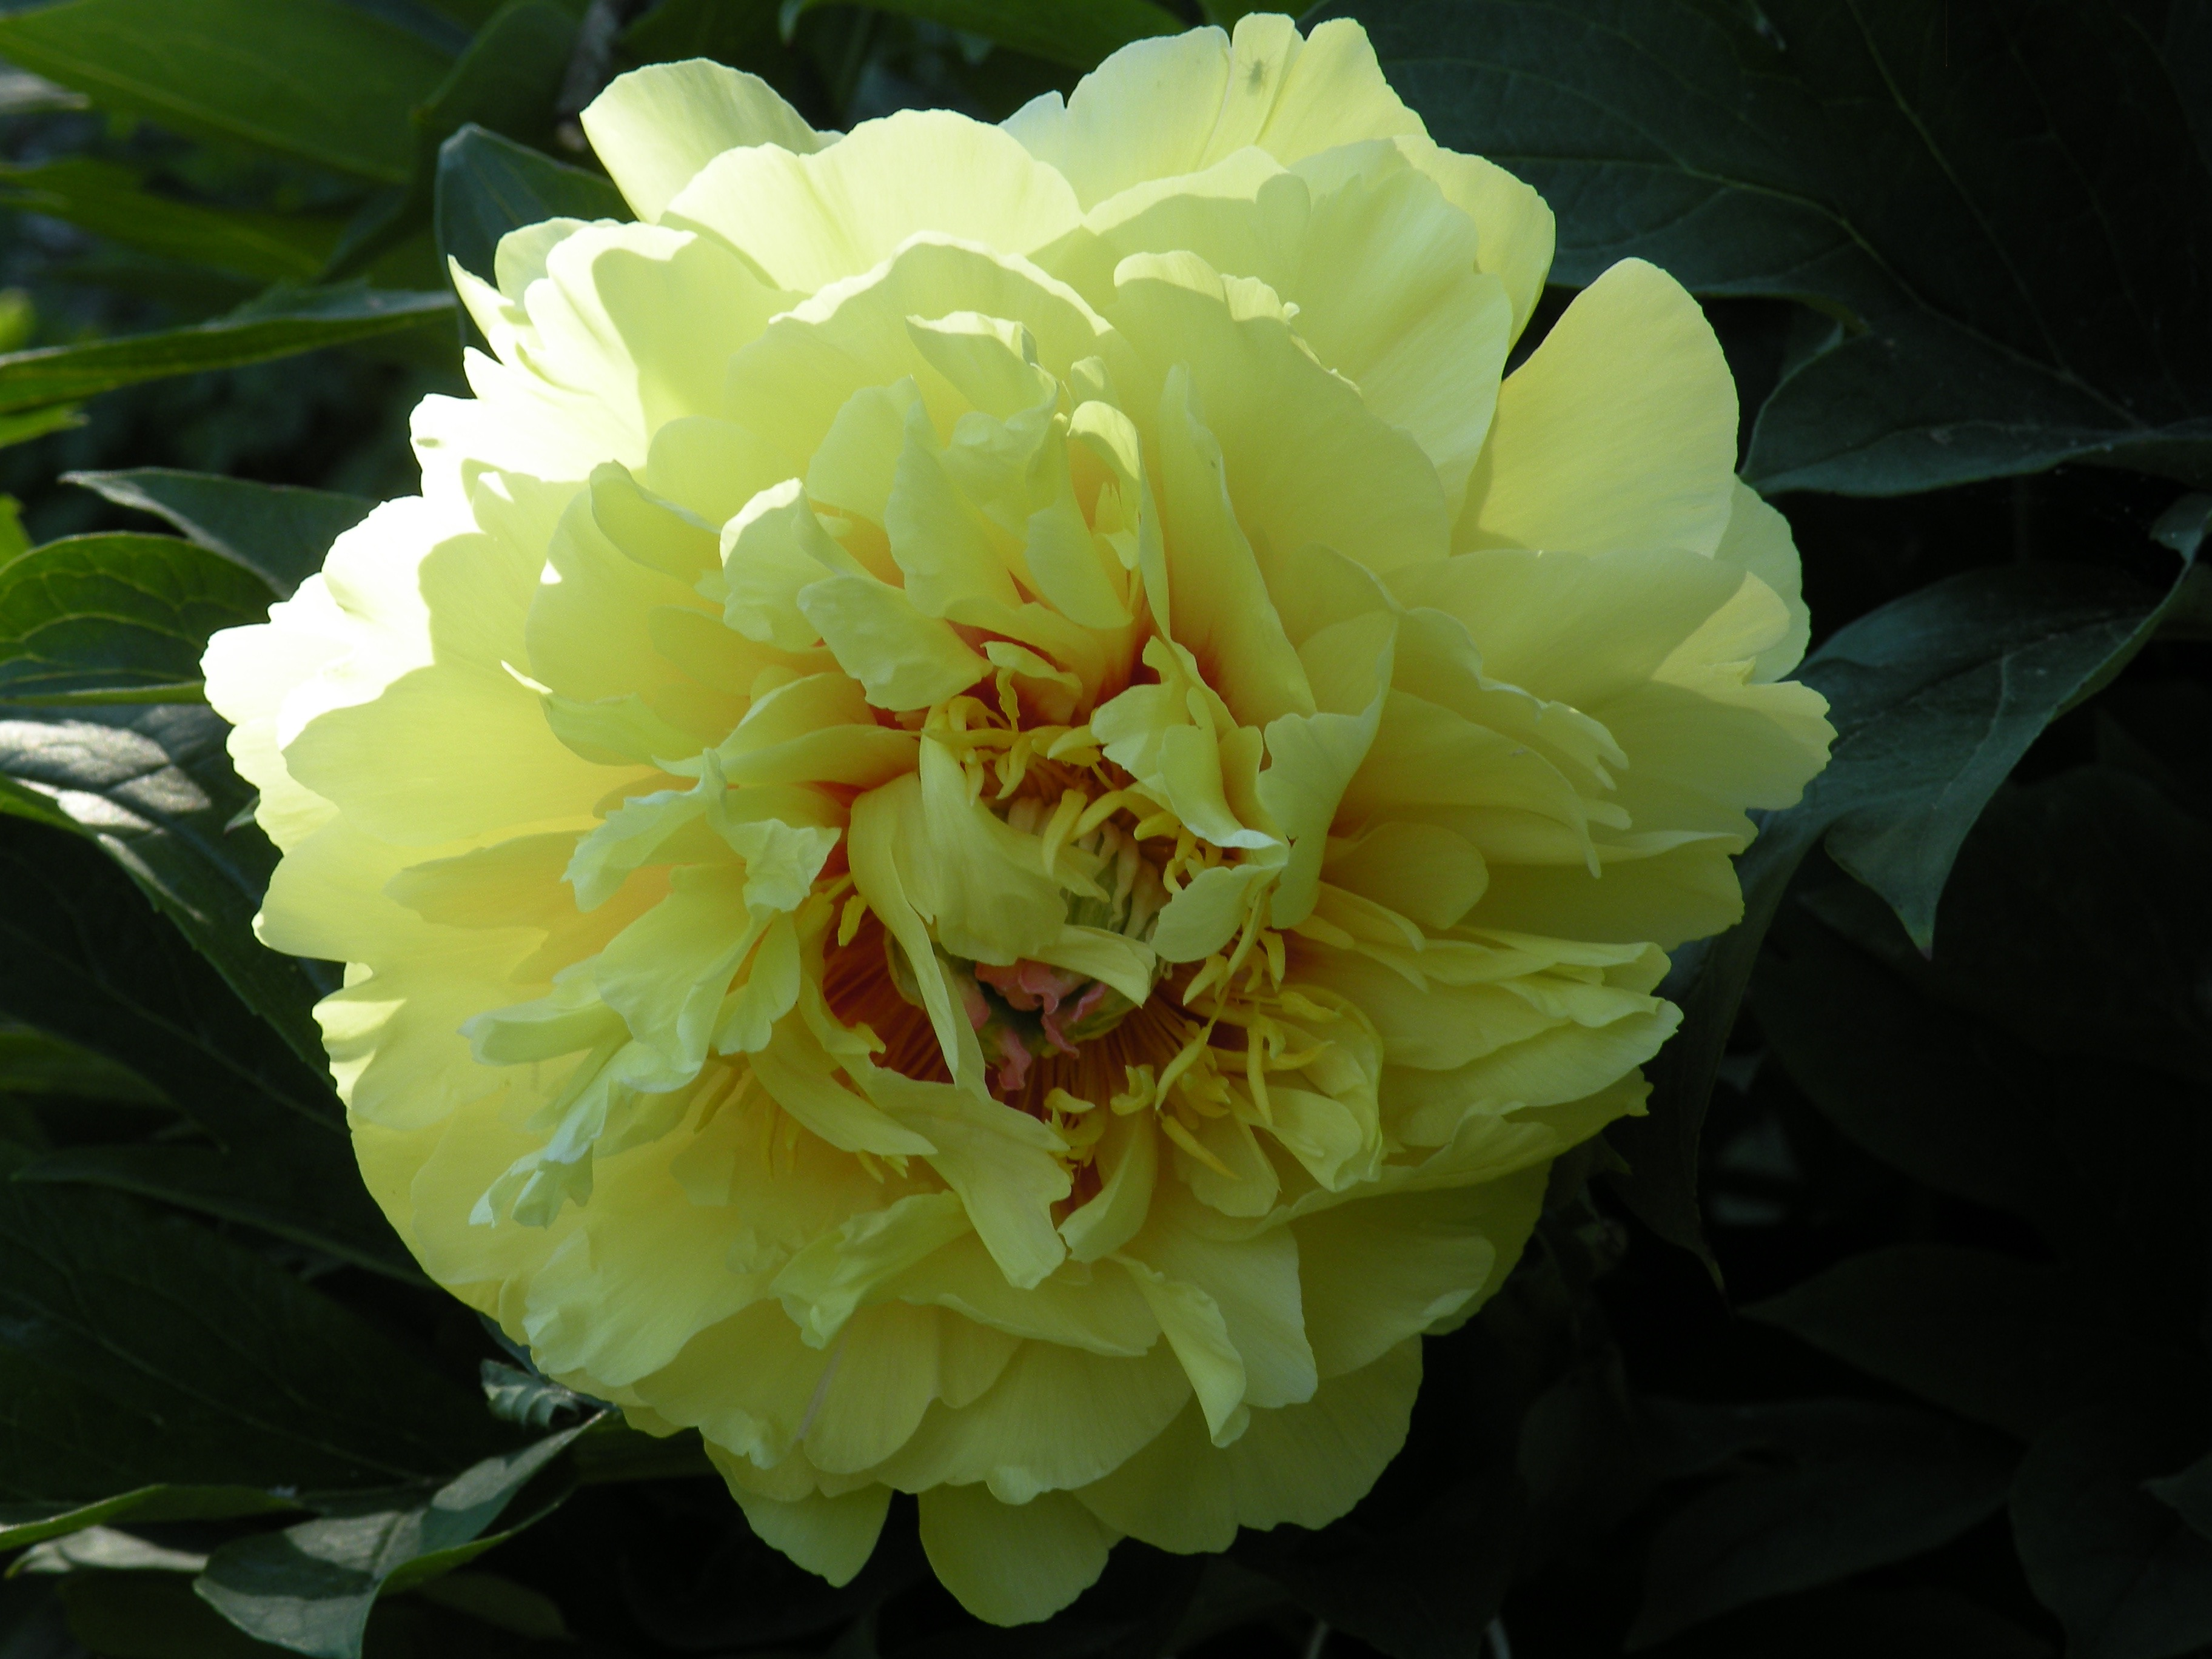 U0027Garden Treasureu0027 A Long Blooming, Intersectional Or U0027Itohu0027 Peony. Plants  Produce Many Buds And Has A Prolonged Bloom As Flowers Take Turns Opening.